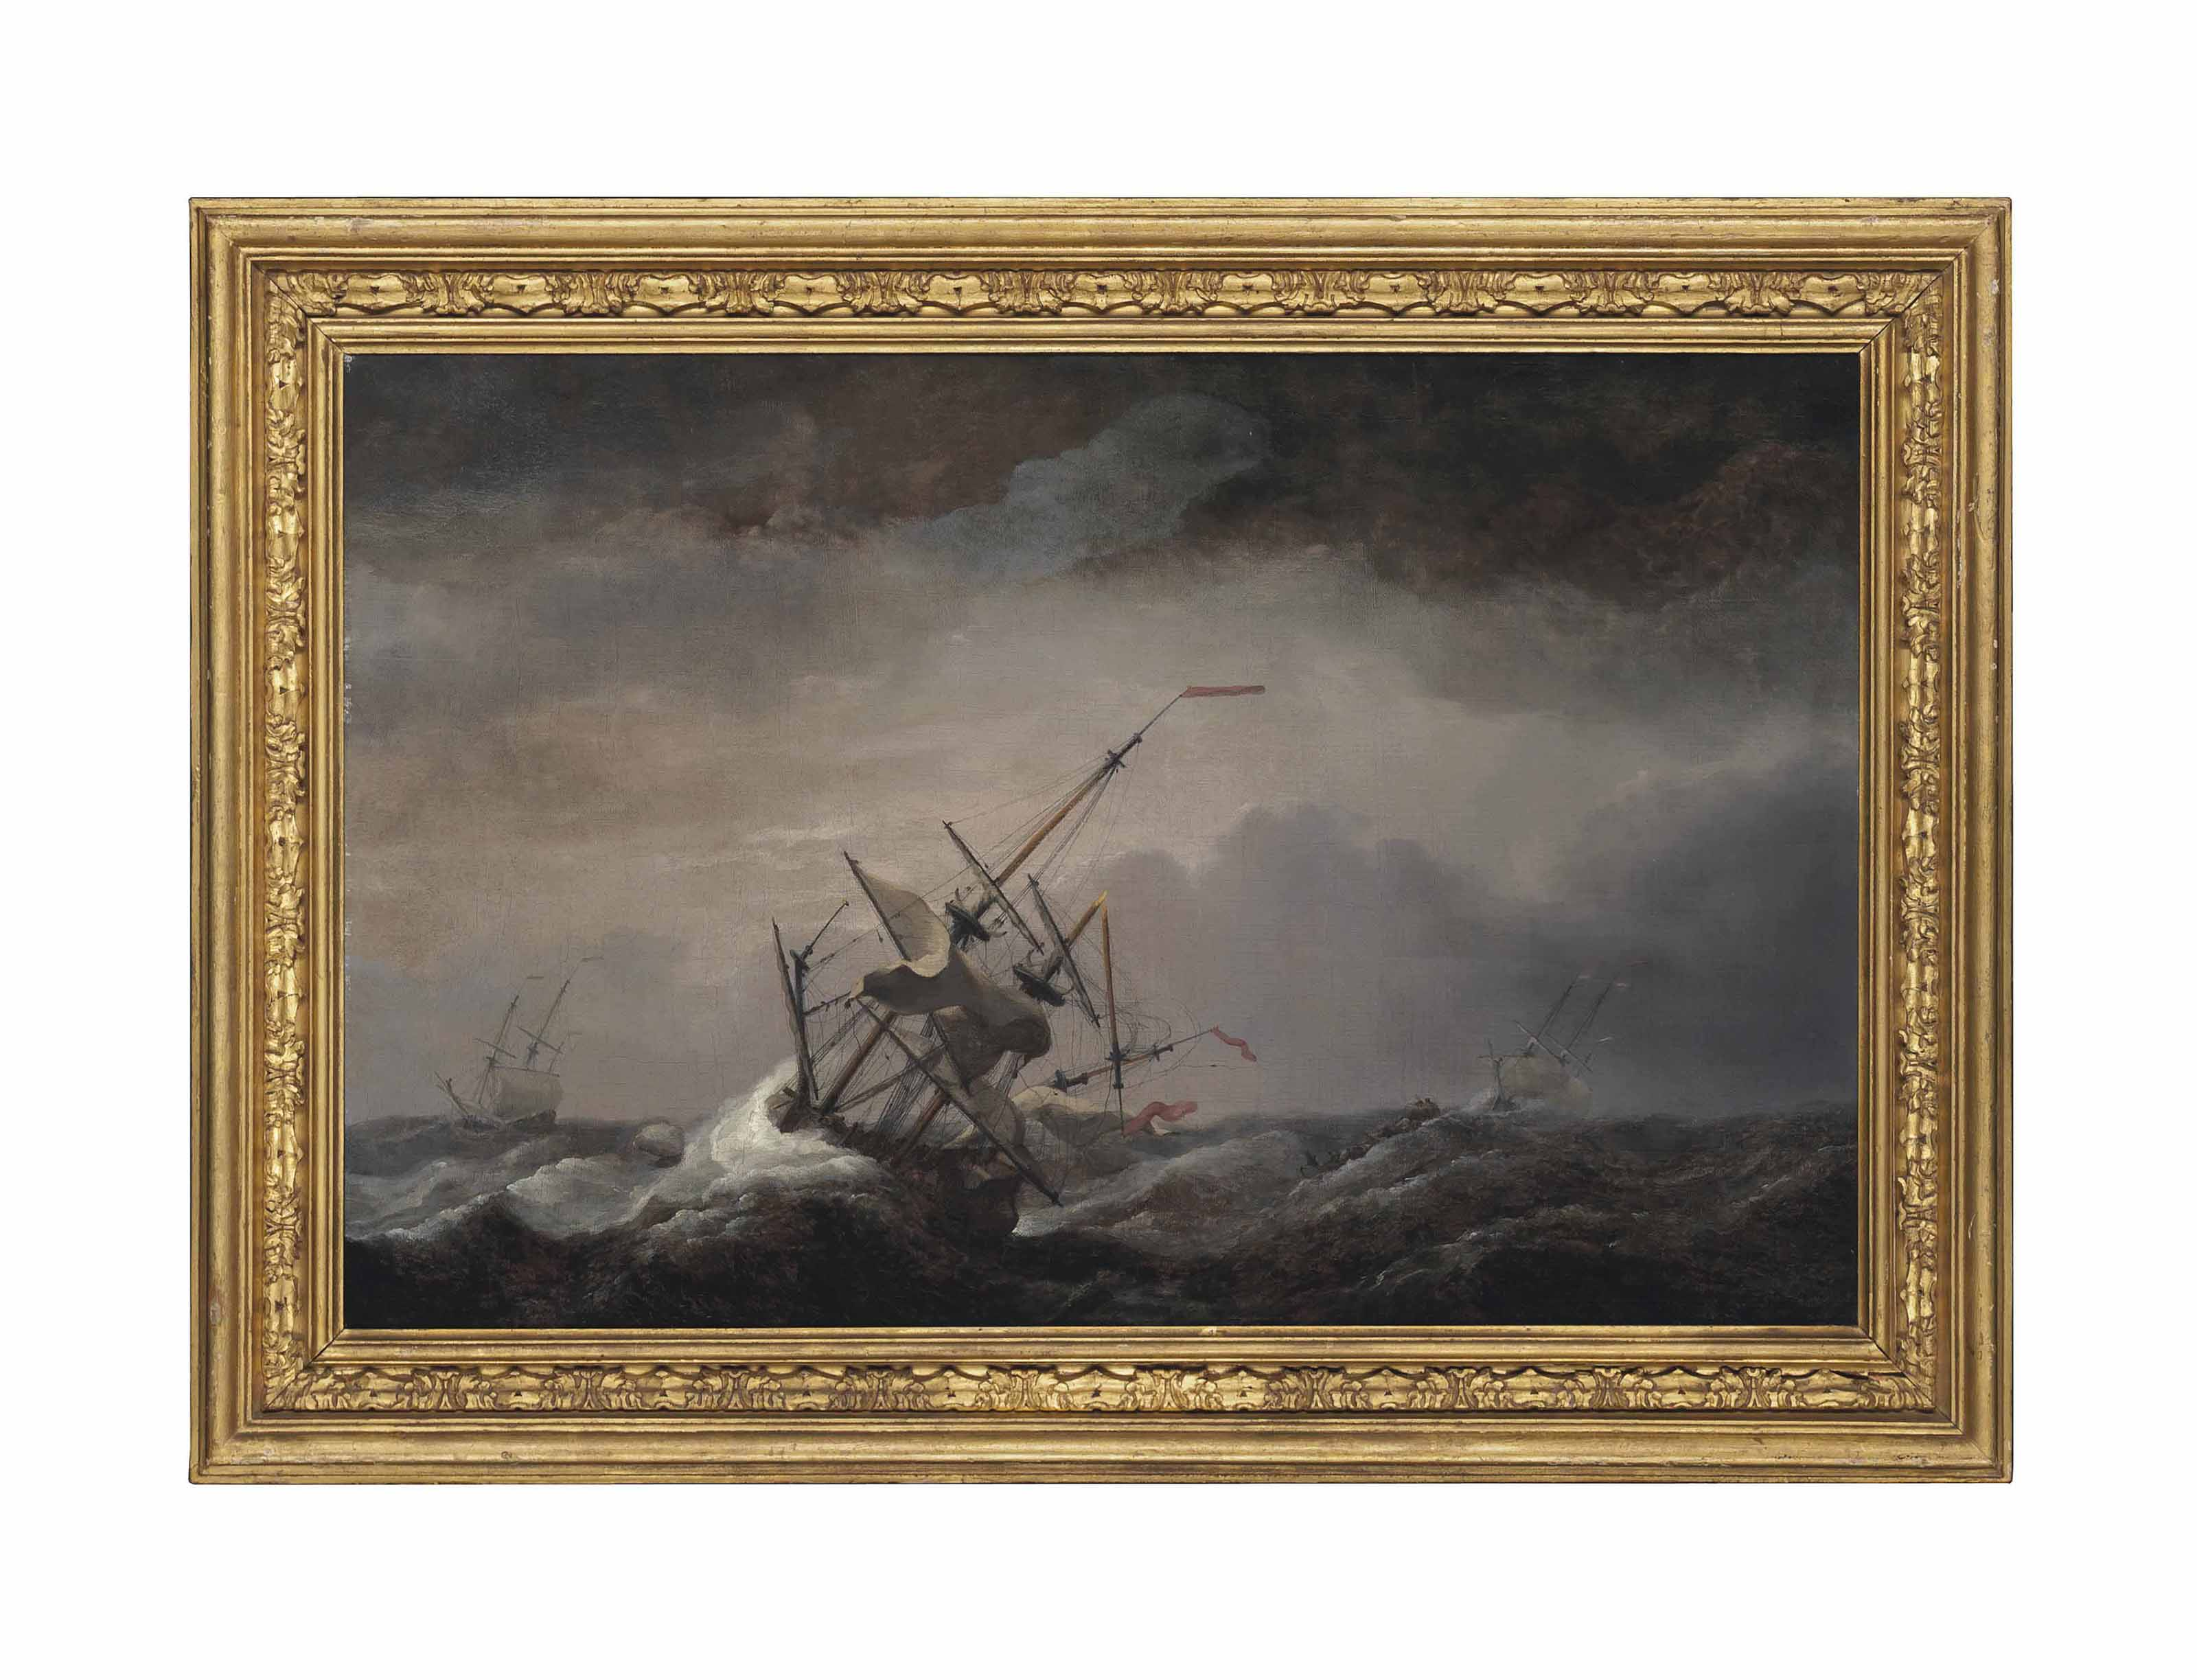 A dismasted English ship at sea driven before a gale, her headsails aback, with other ships in a heavy sea